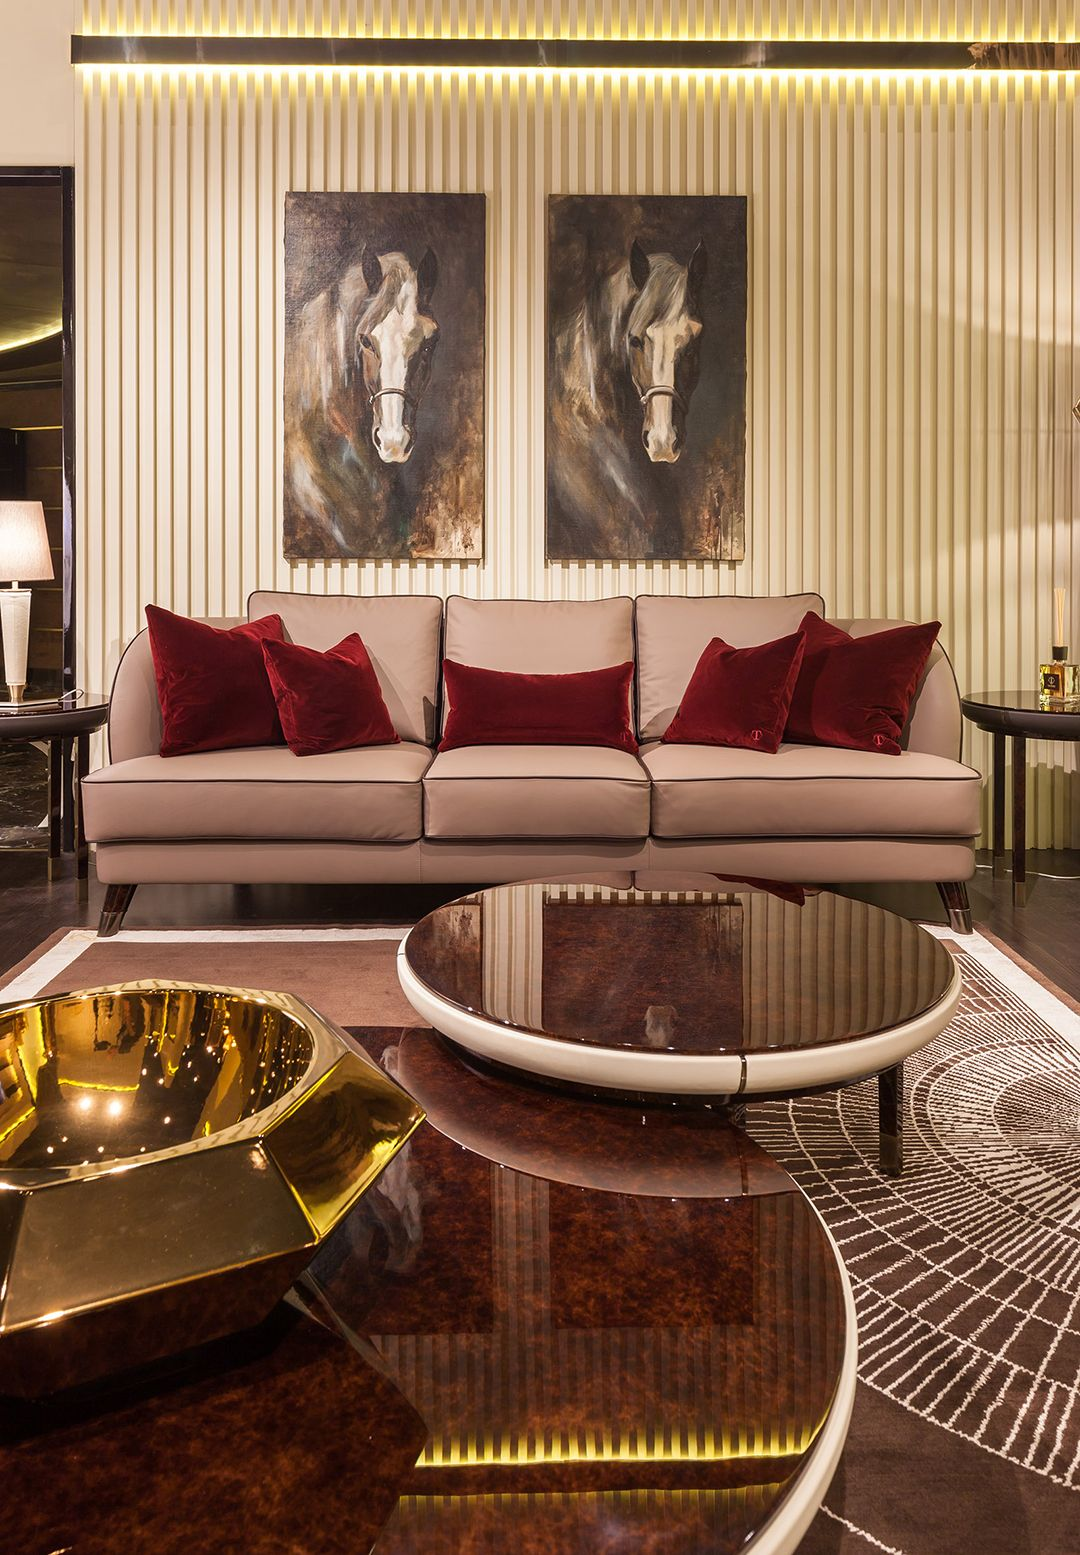 Italian Furniture for exclusive and modern design | welcome ...